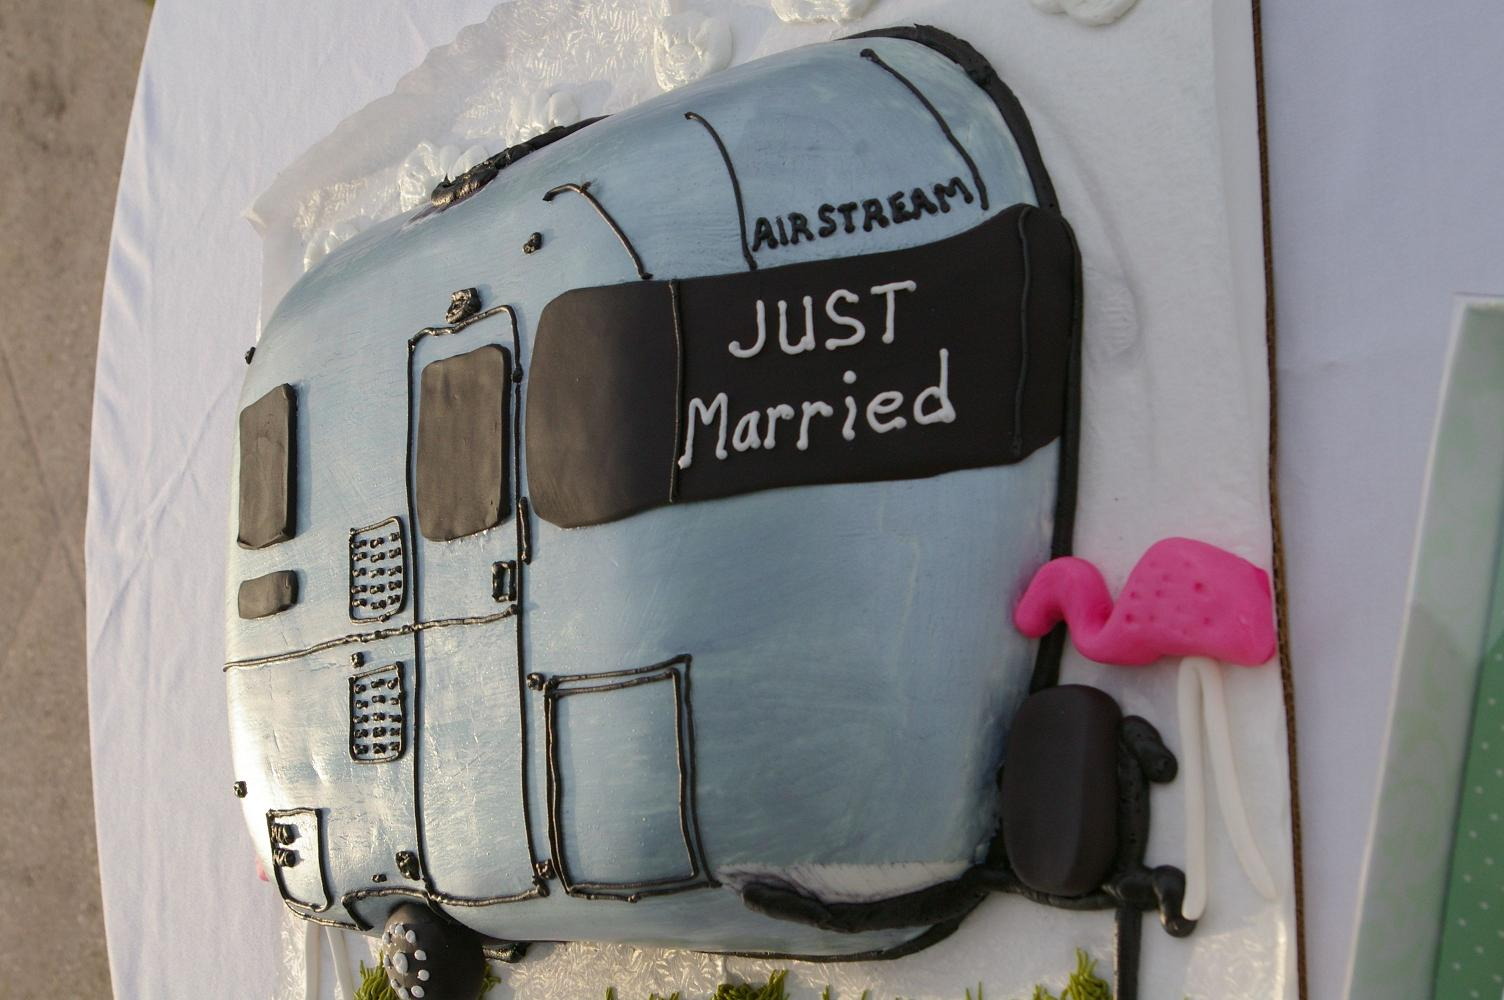 Click image for larger version  Name:Airstream 2.JPG Views:152 Size:143.8 KB ID:108556